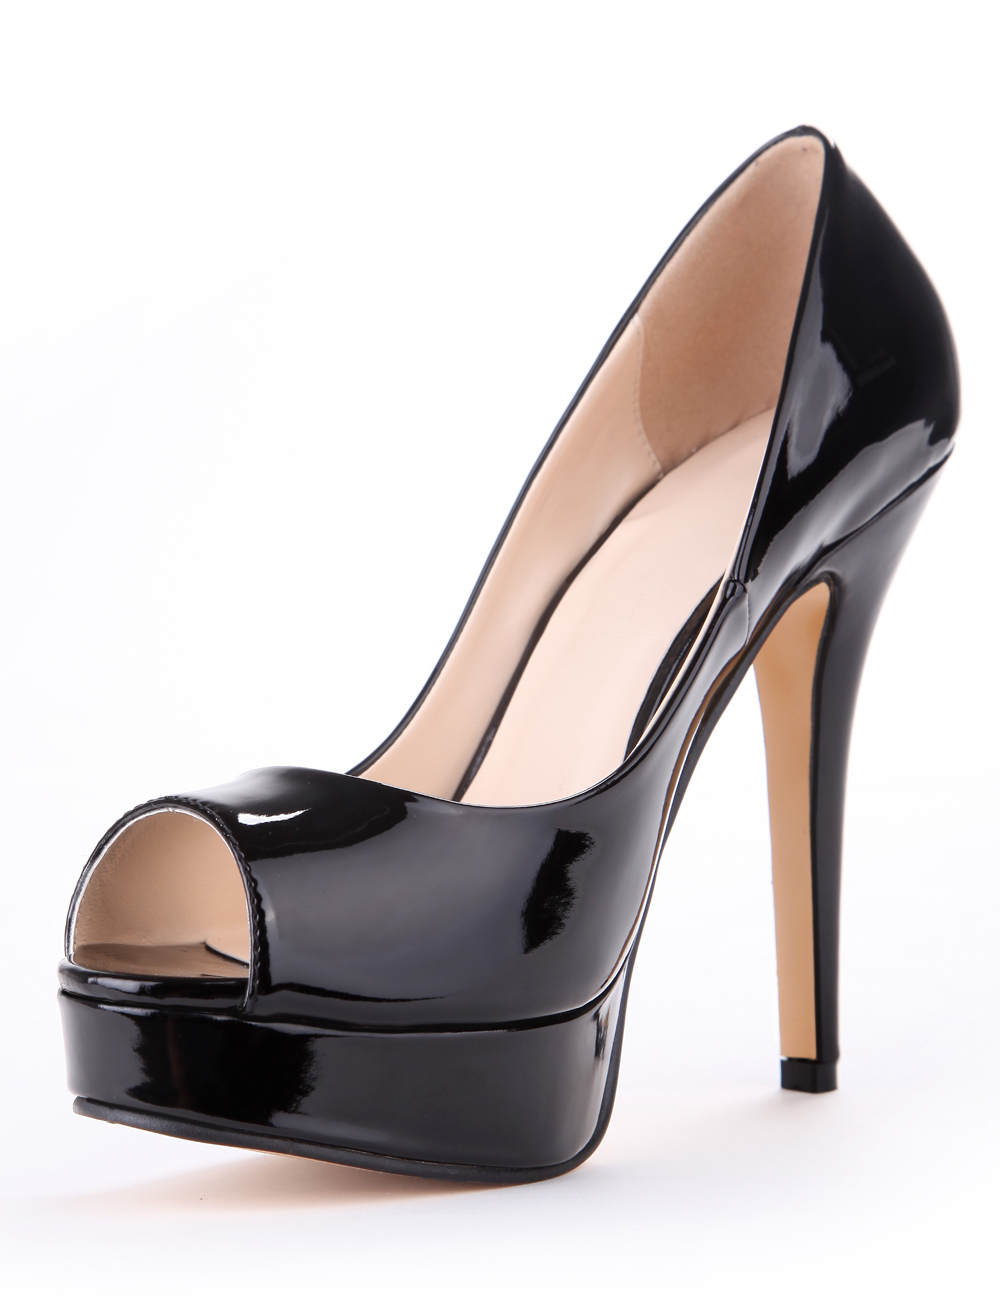 Attractive Black Patent Peep Toe High Heels